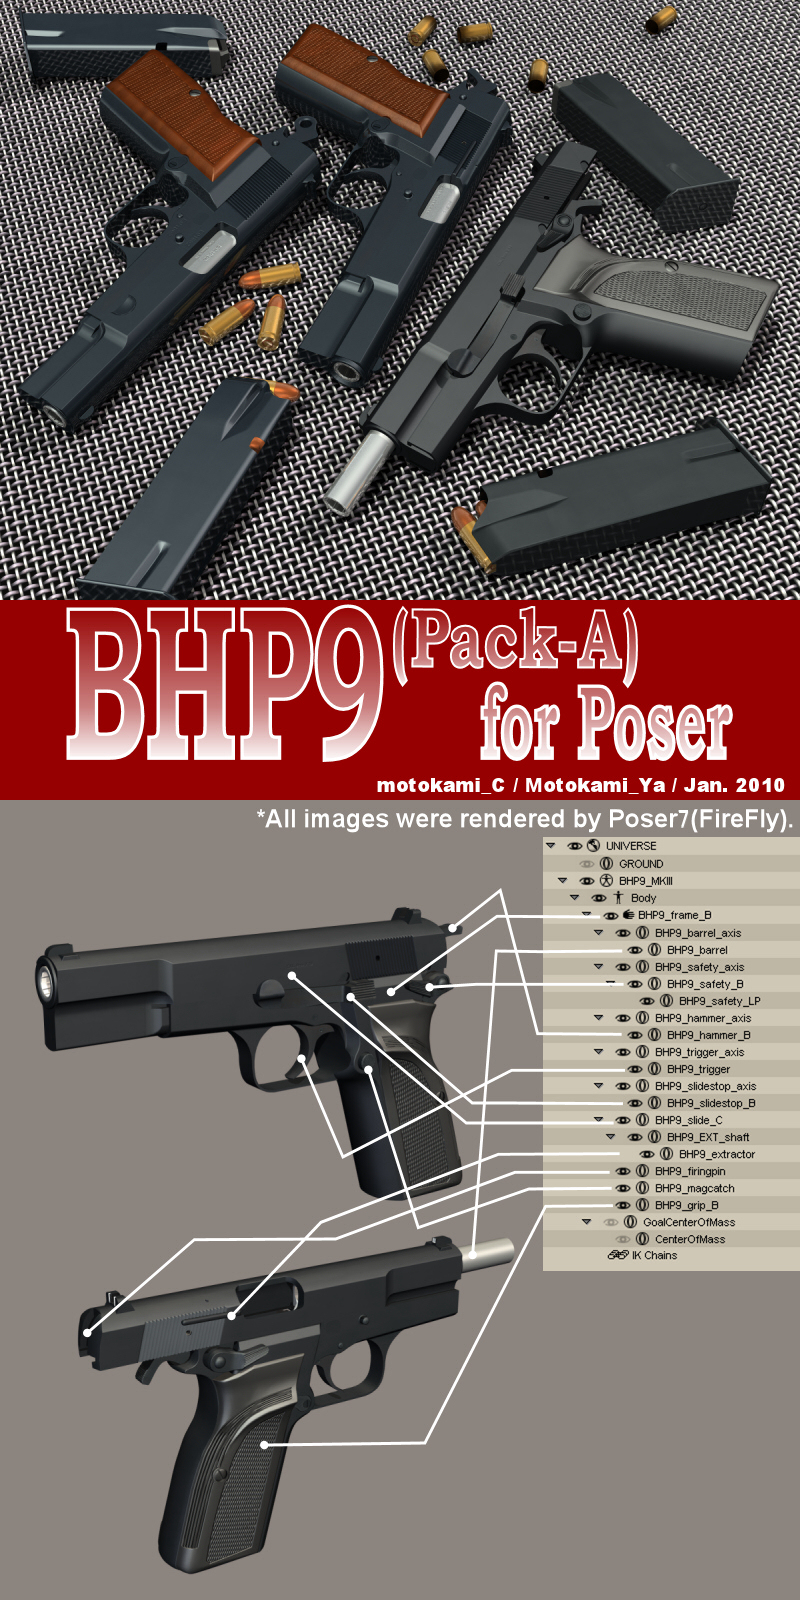 BHP9(Pack-A) for Poser